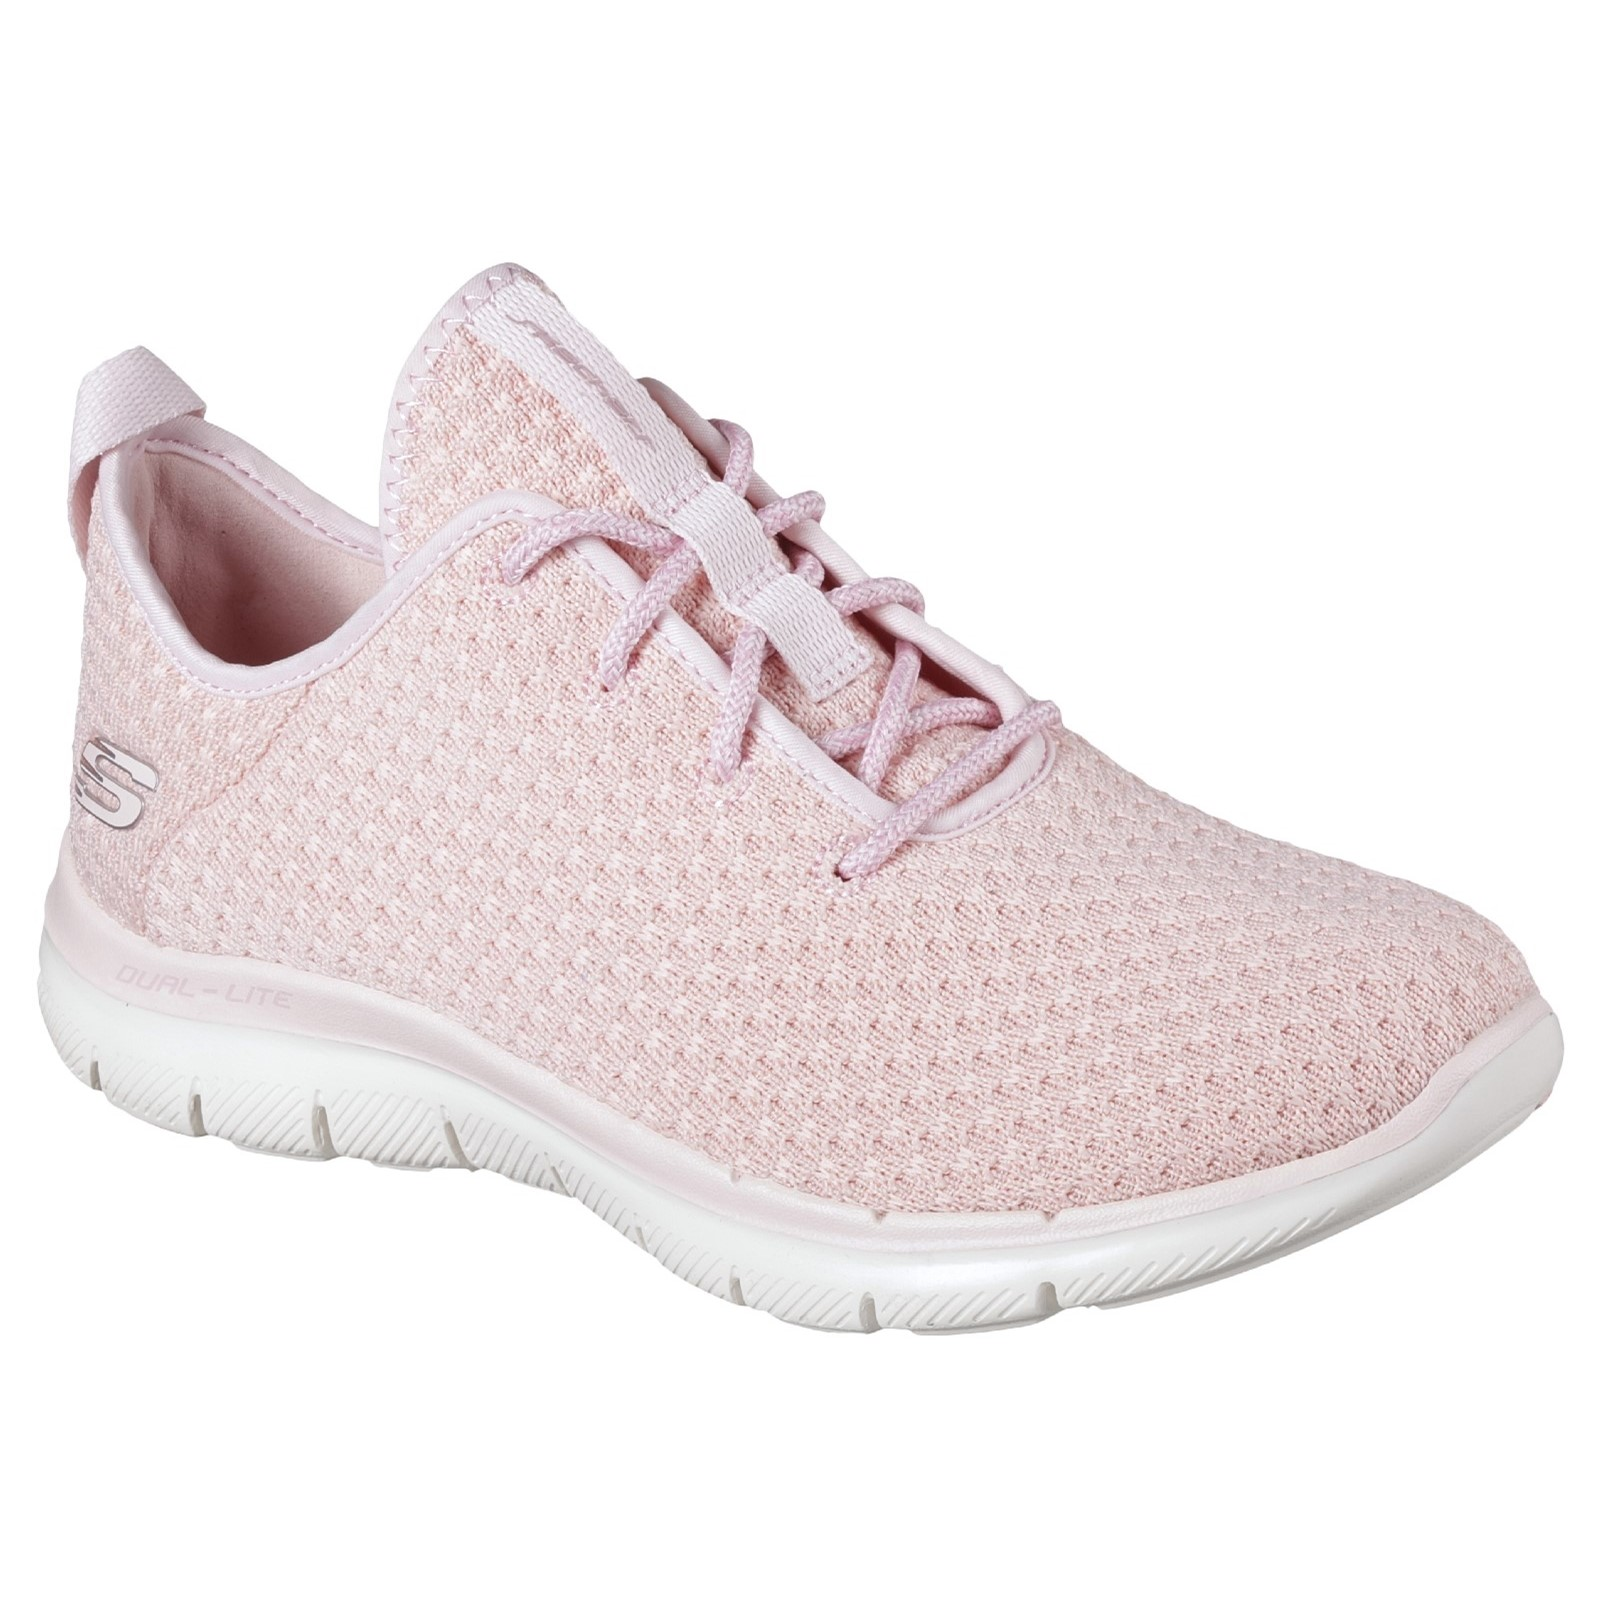 Skechers Donna Flex Appeal 2.0 Marcato Move Sportivo